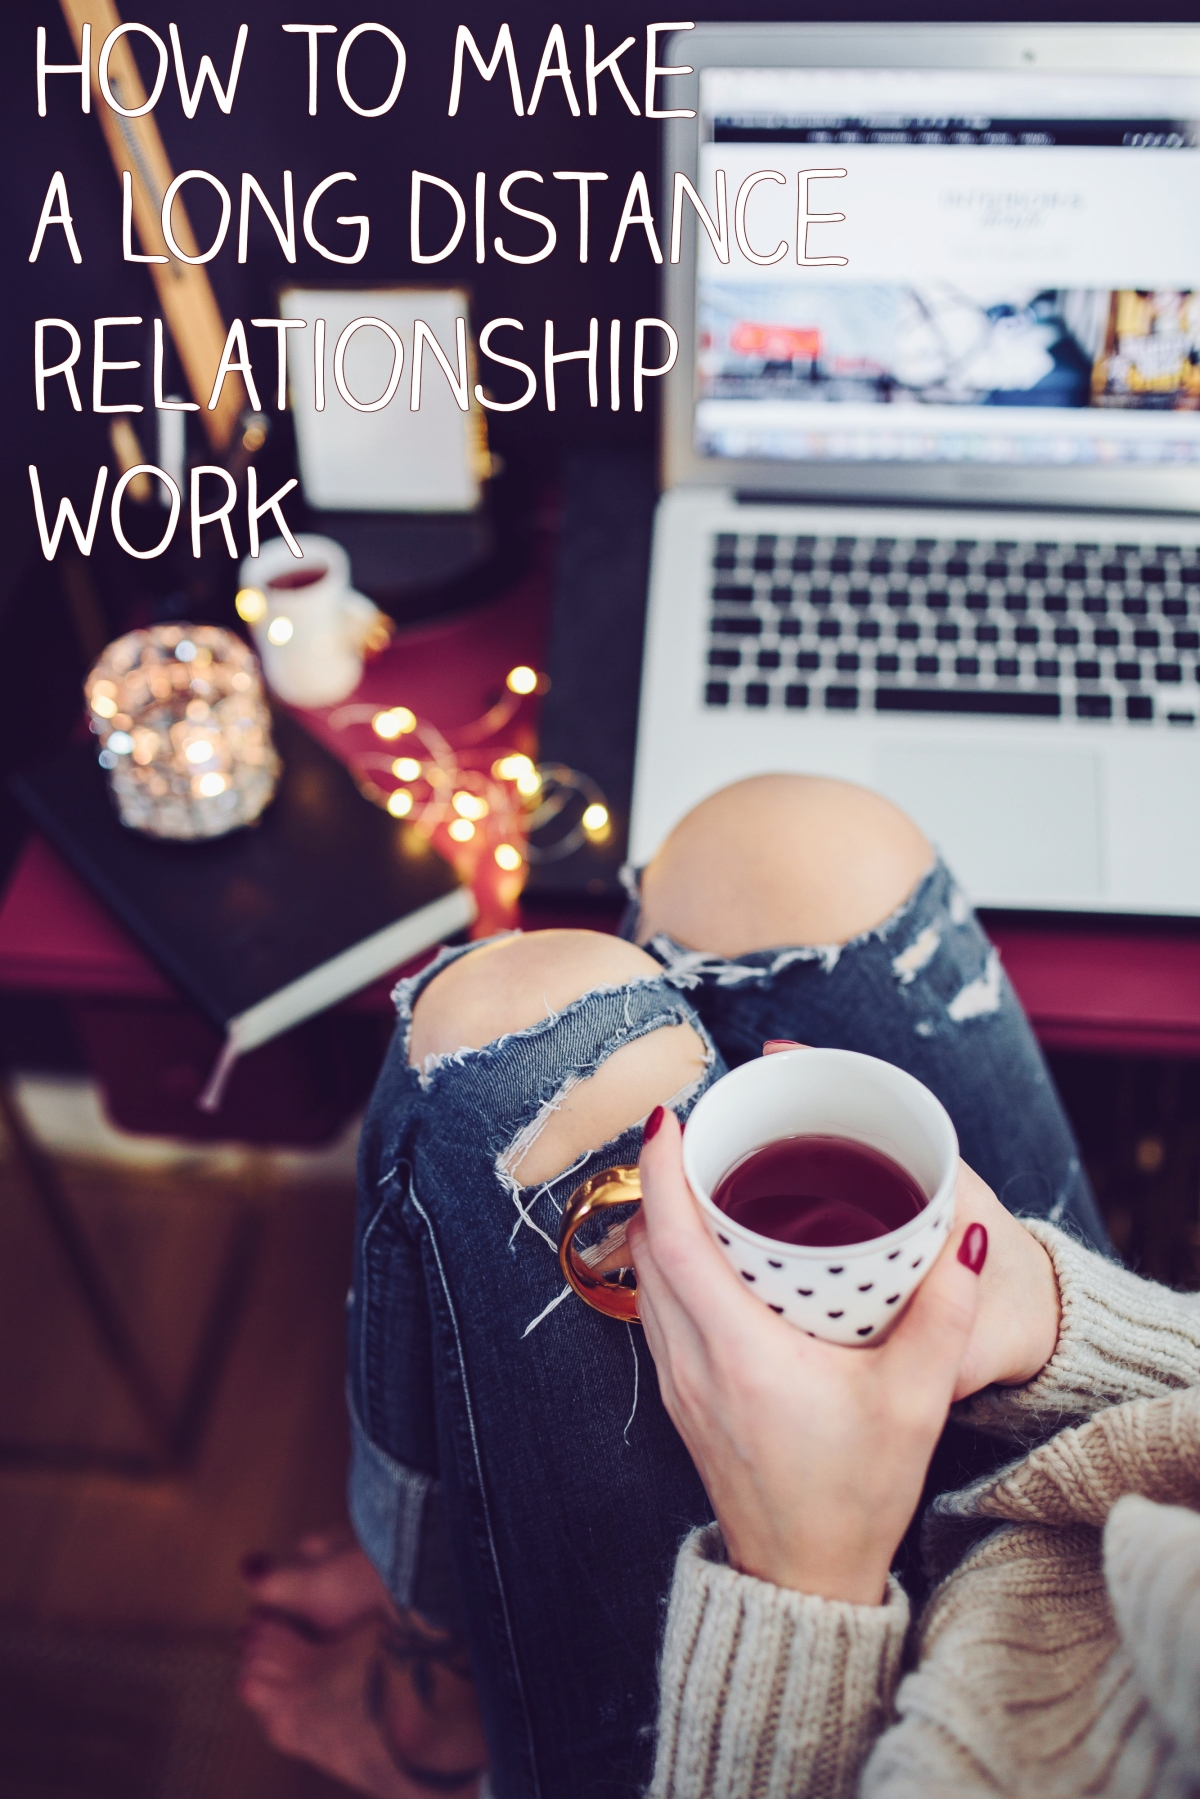 5 tips on how to make a long distance relationshipwork